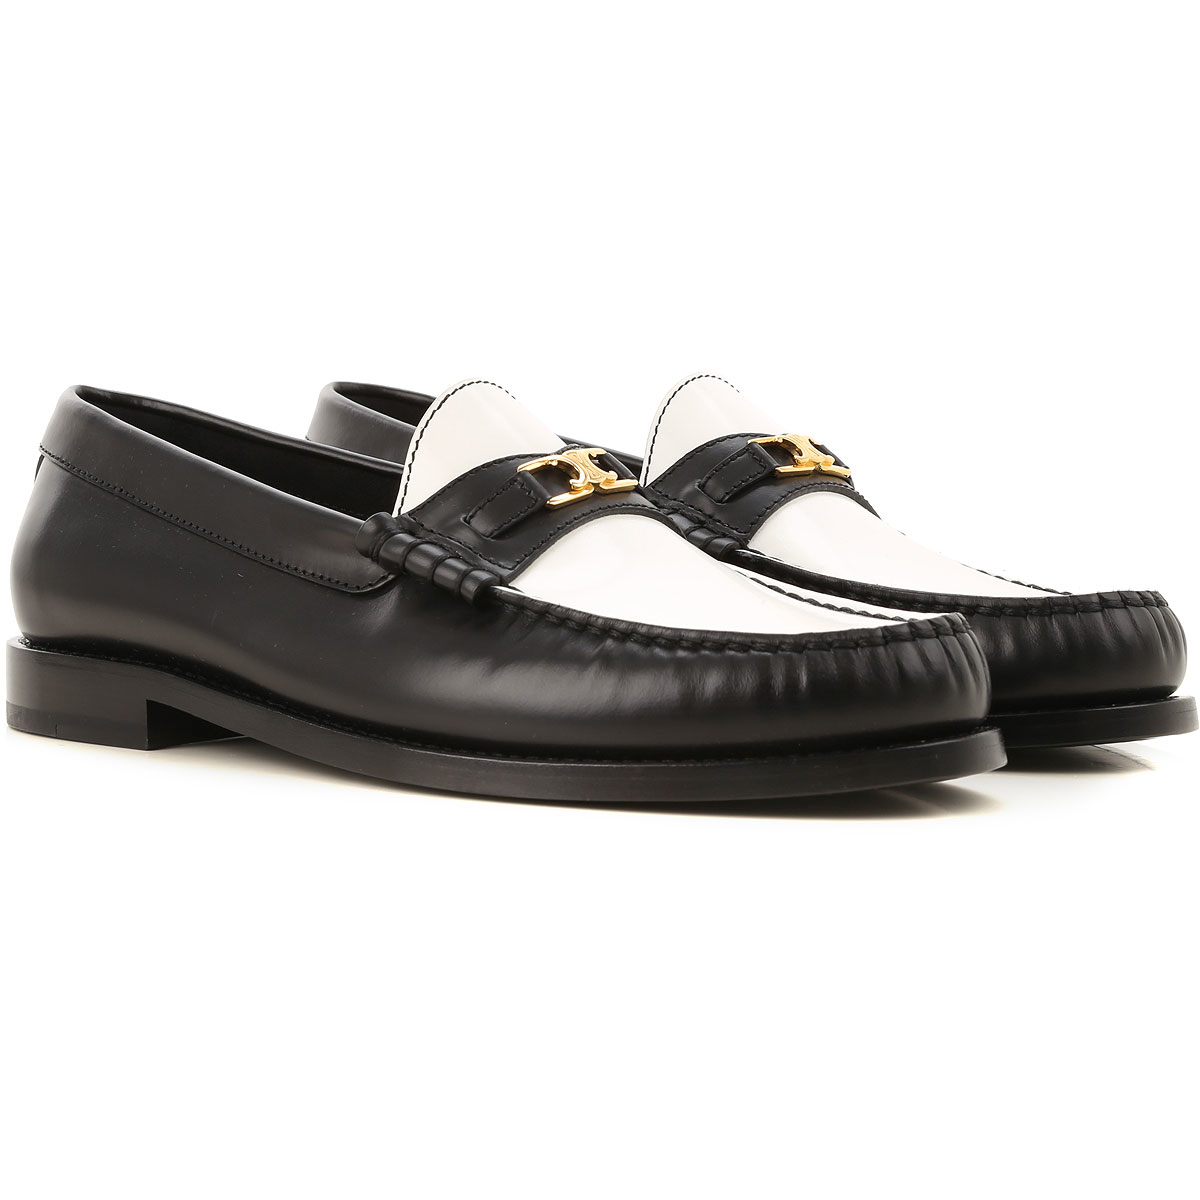 Celine Loafers for Women Black Canada - GOOFASH - Womens FLAT SHOES